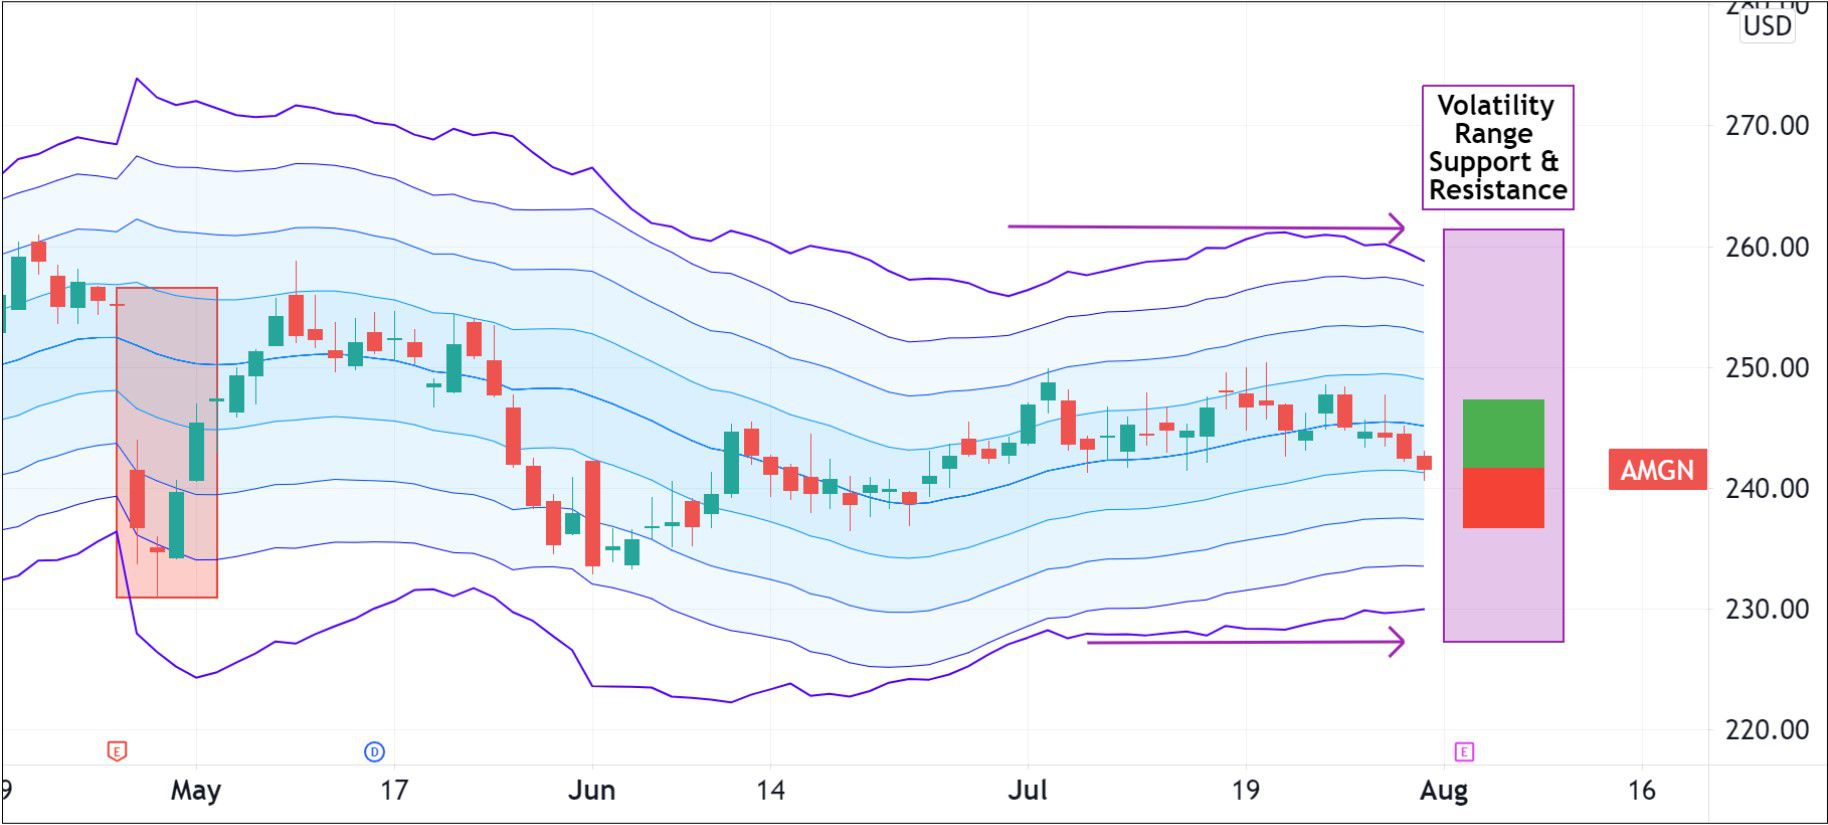 Volatility pattern for Amgen Inc. (AMGN)